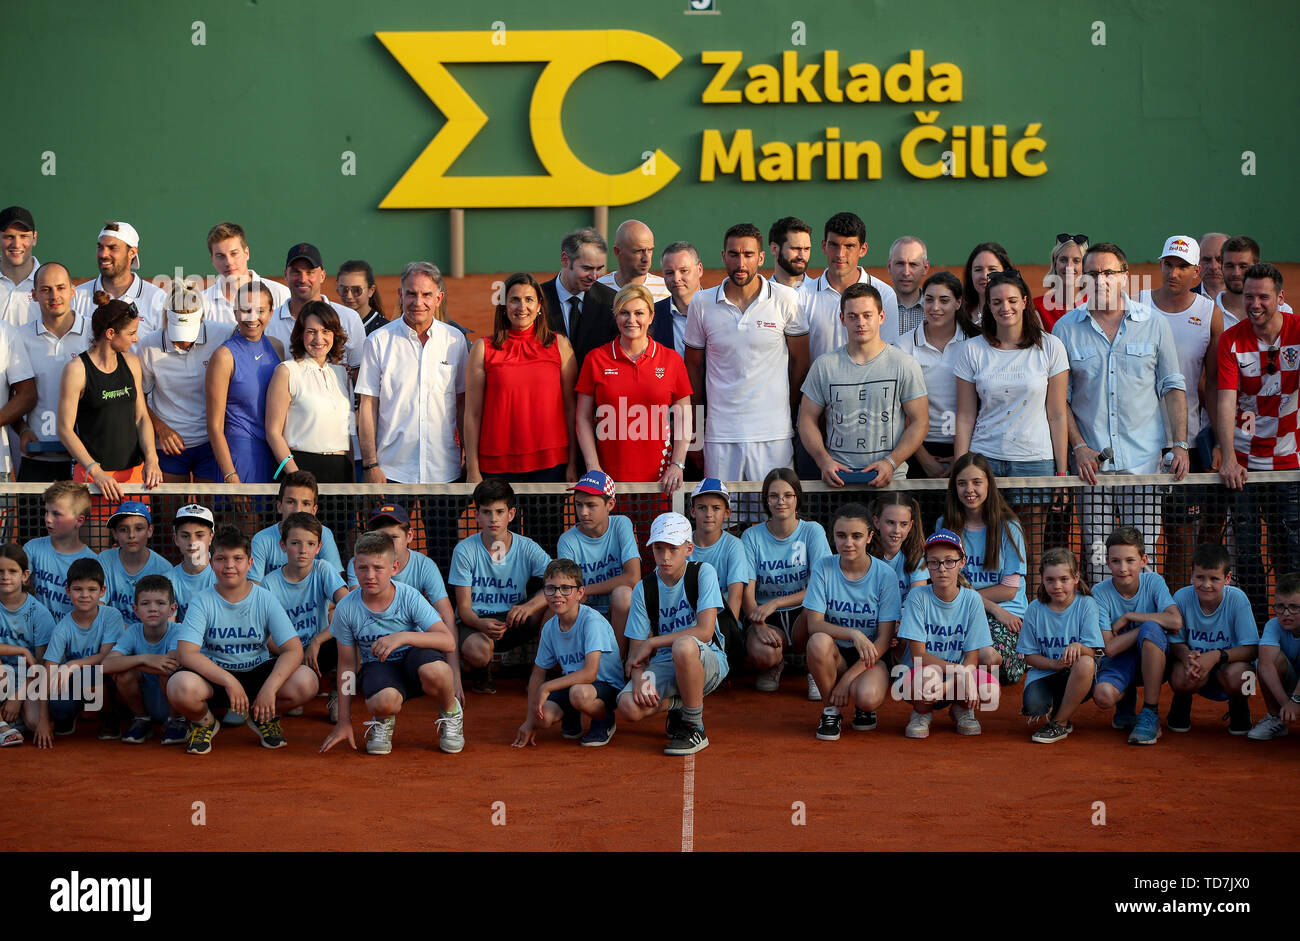 Zagreb, Croatia. 12th June, 2019. Croatian President Kolinda Grabar-Kitarovic (C) poses for a group photo with participants of Gem Set Croatia, a humanitarian sports event organized by the Marin Cilic Foundation, in Zagreb, Croatia, June 12, 2019. Credit: Igor Kralj/Xinhua/Alamy Live News - Stock Image